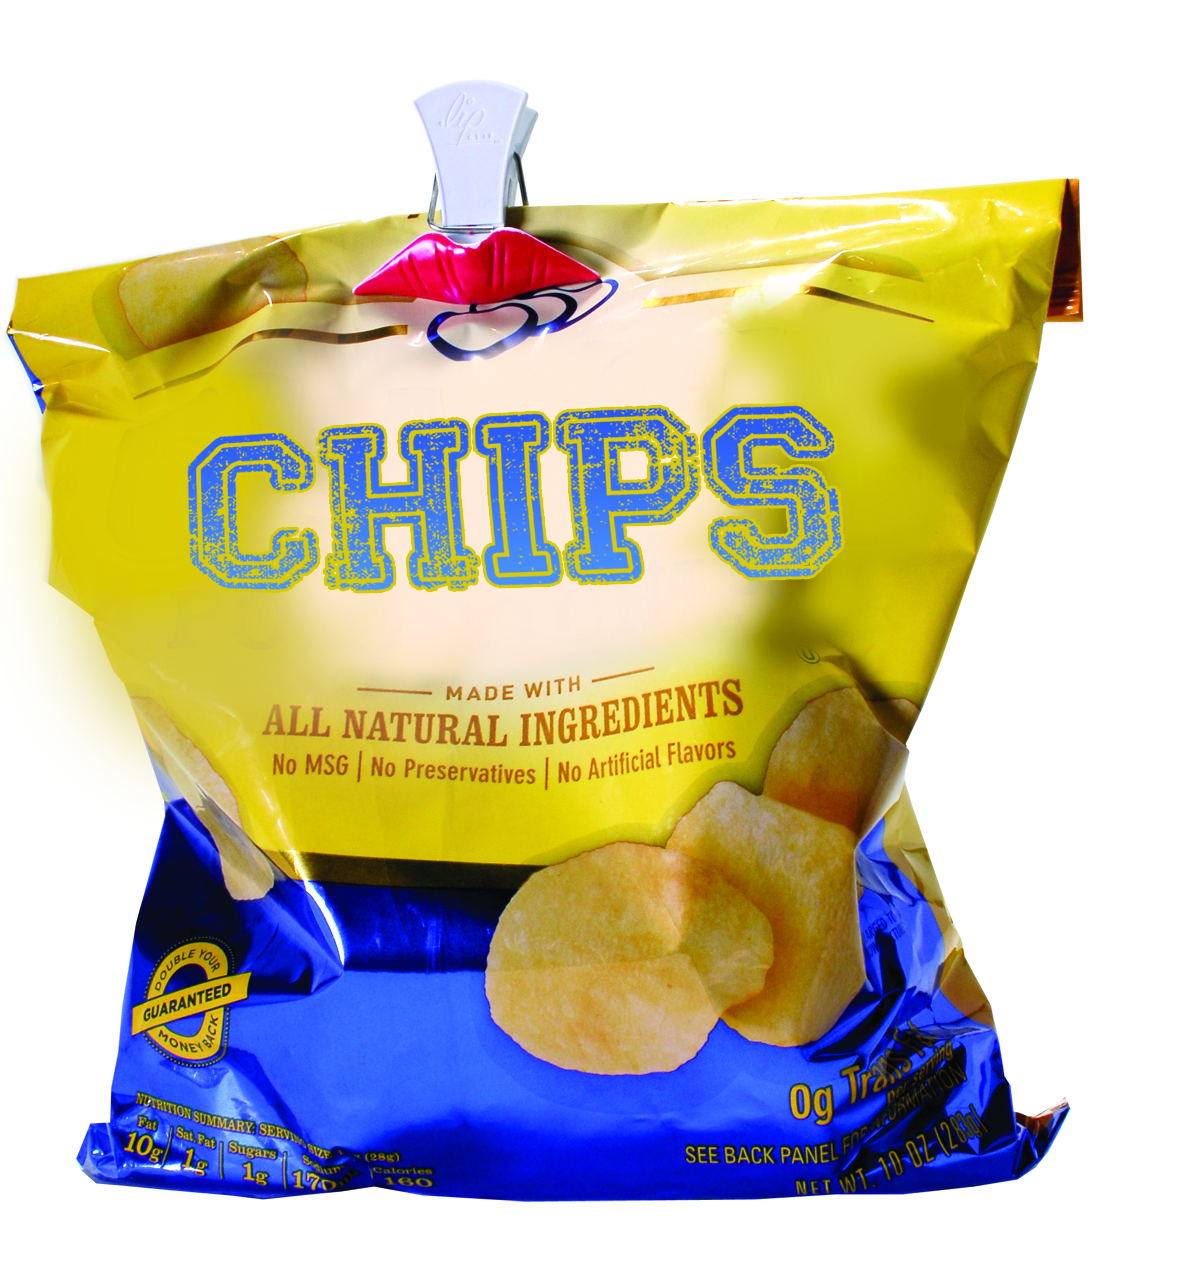 05507_ChipClips2pk_InUse1.jpg